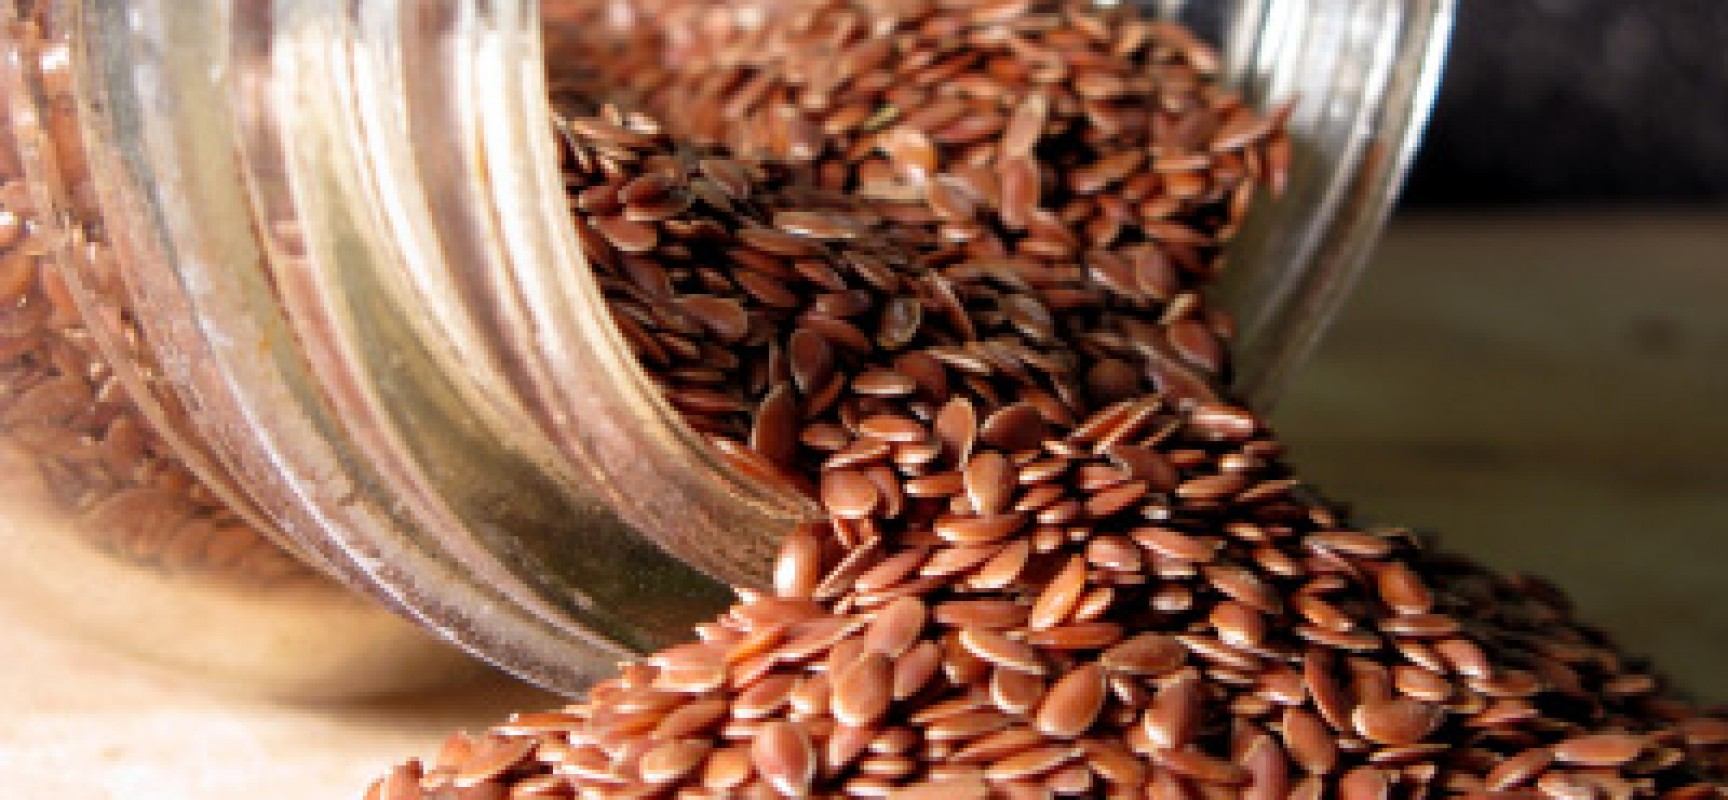 Flax seeds are Nutrition Superstar!